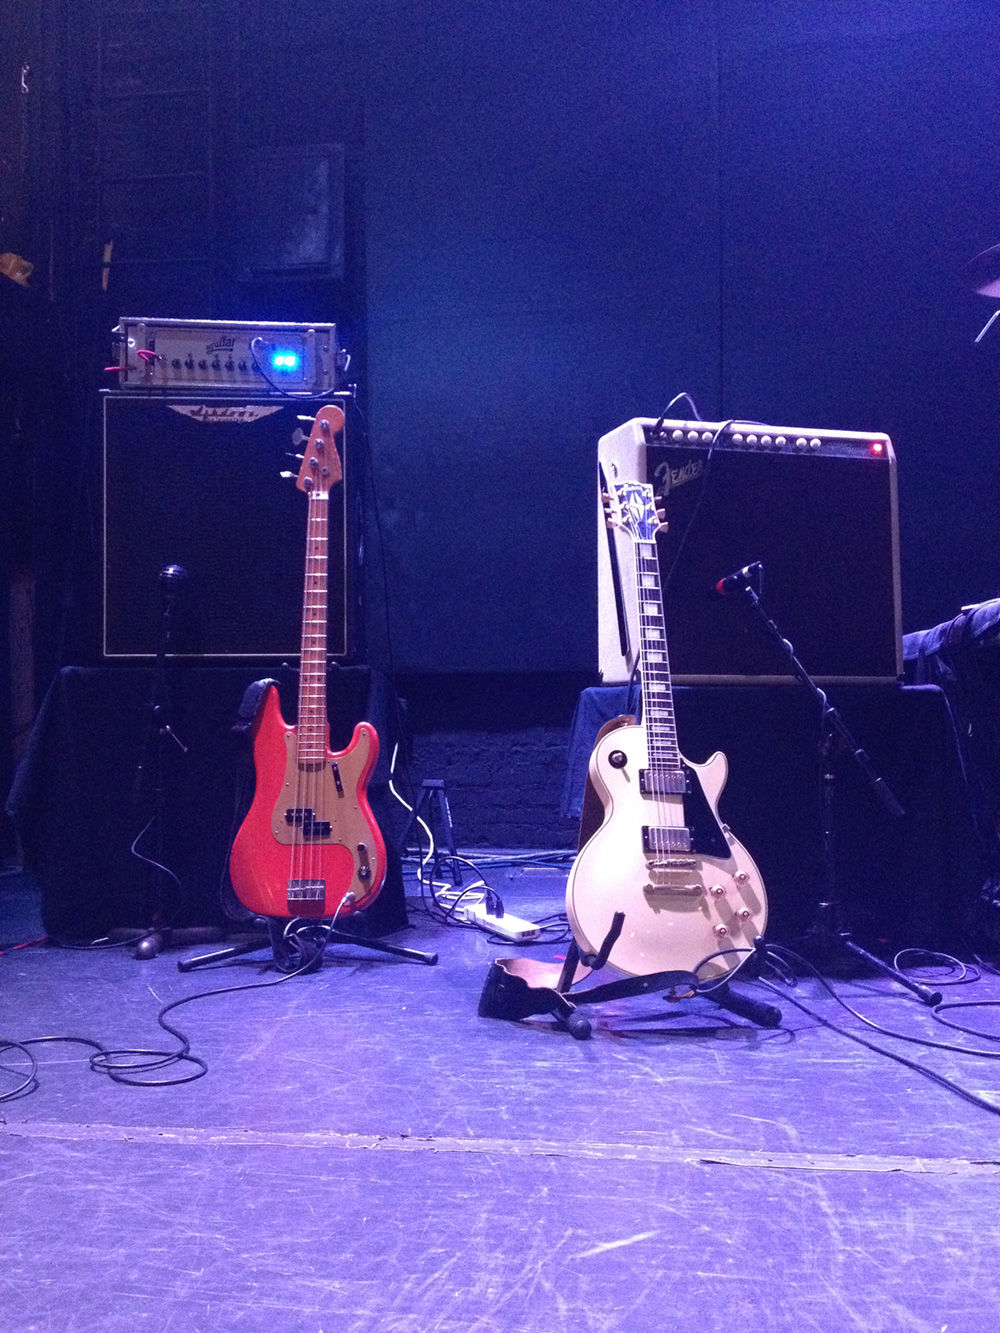 The white guitar was back (Photo: Joakim)